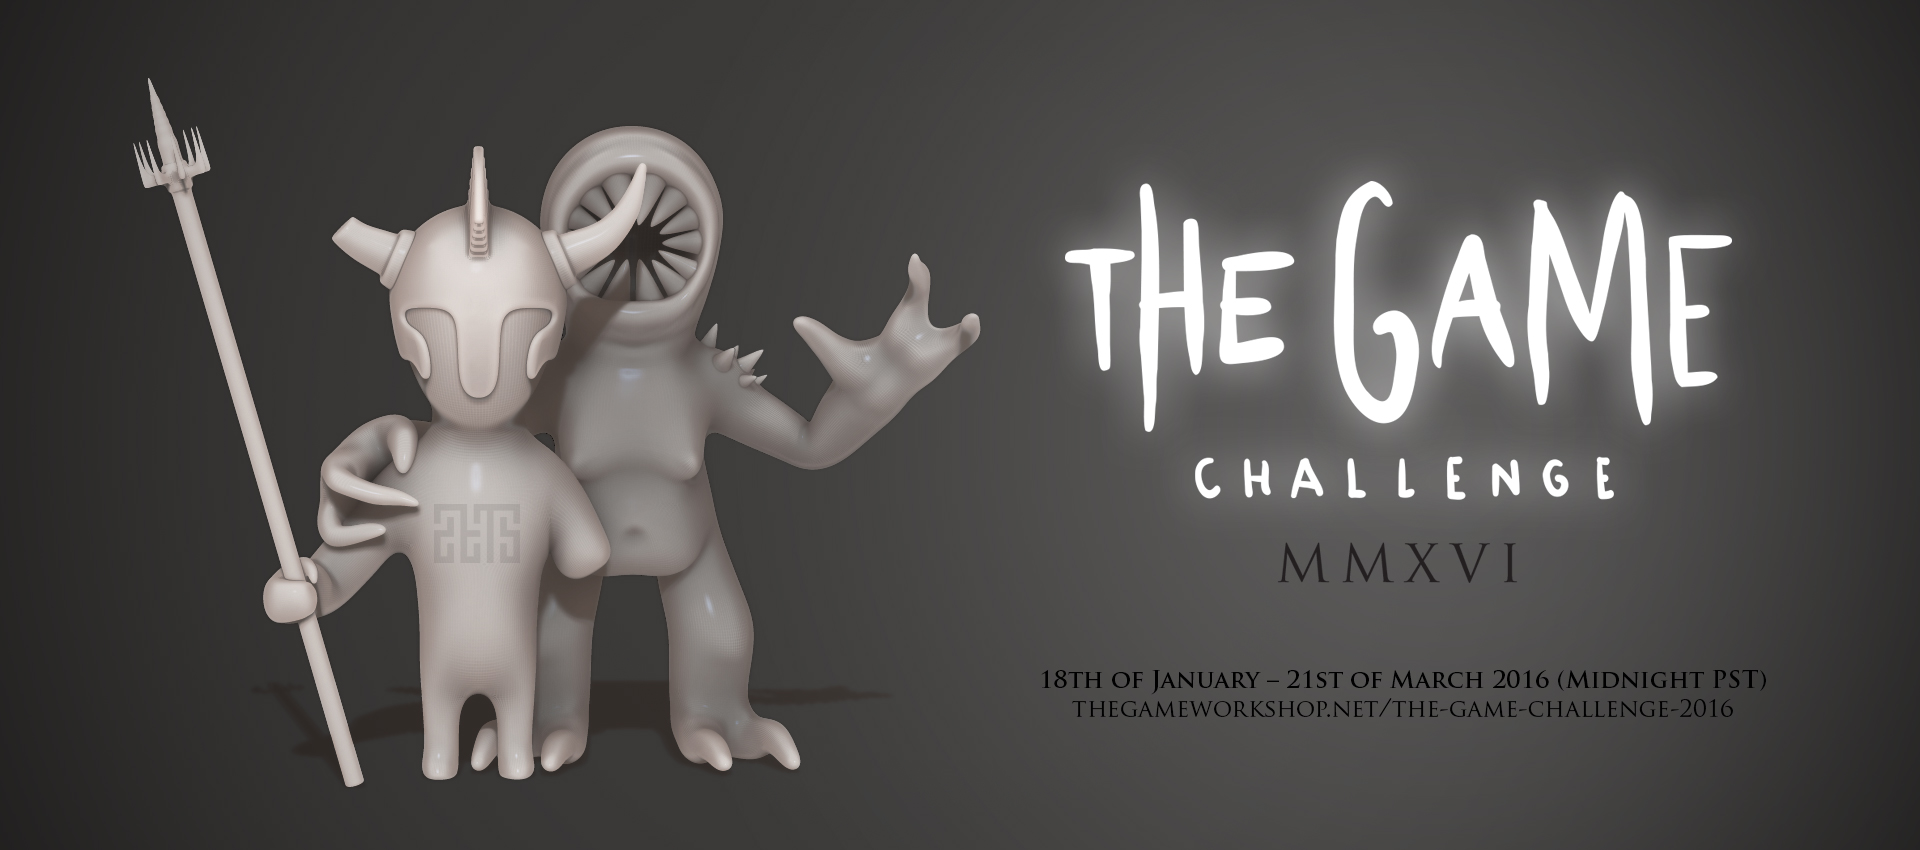 The Game Challenge 2016